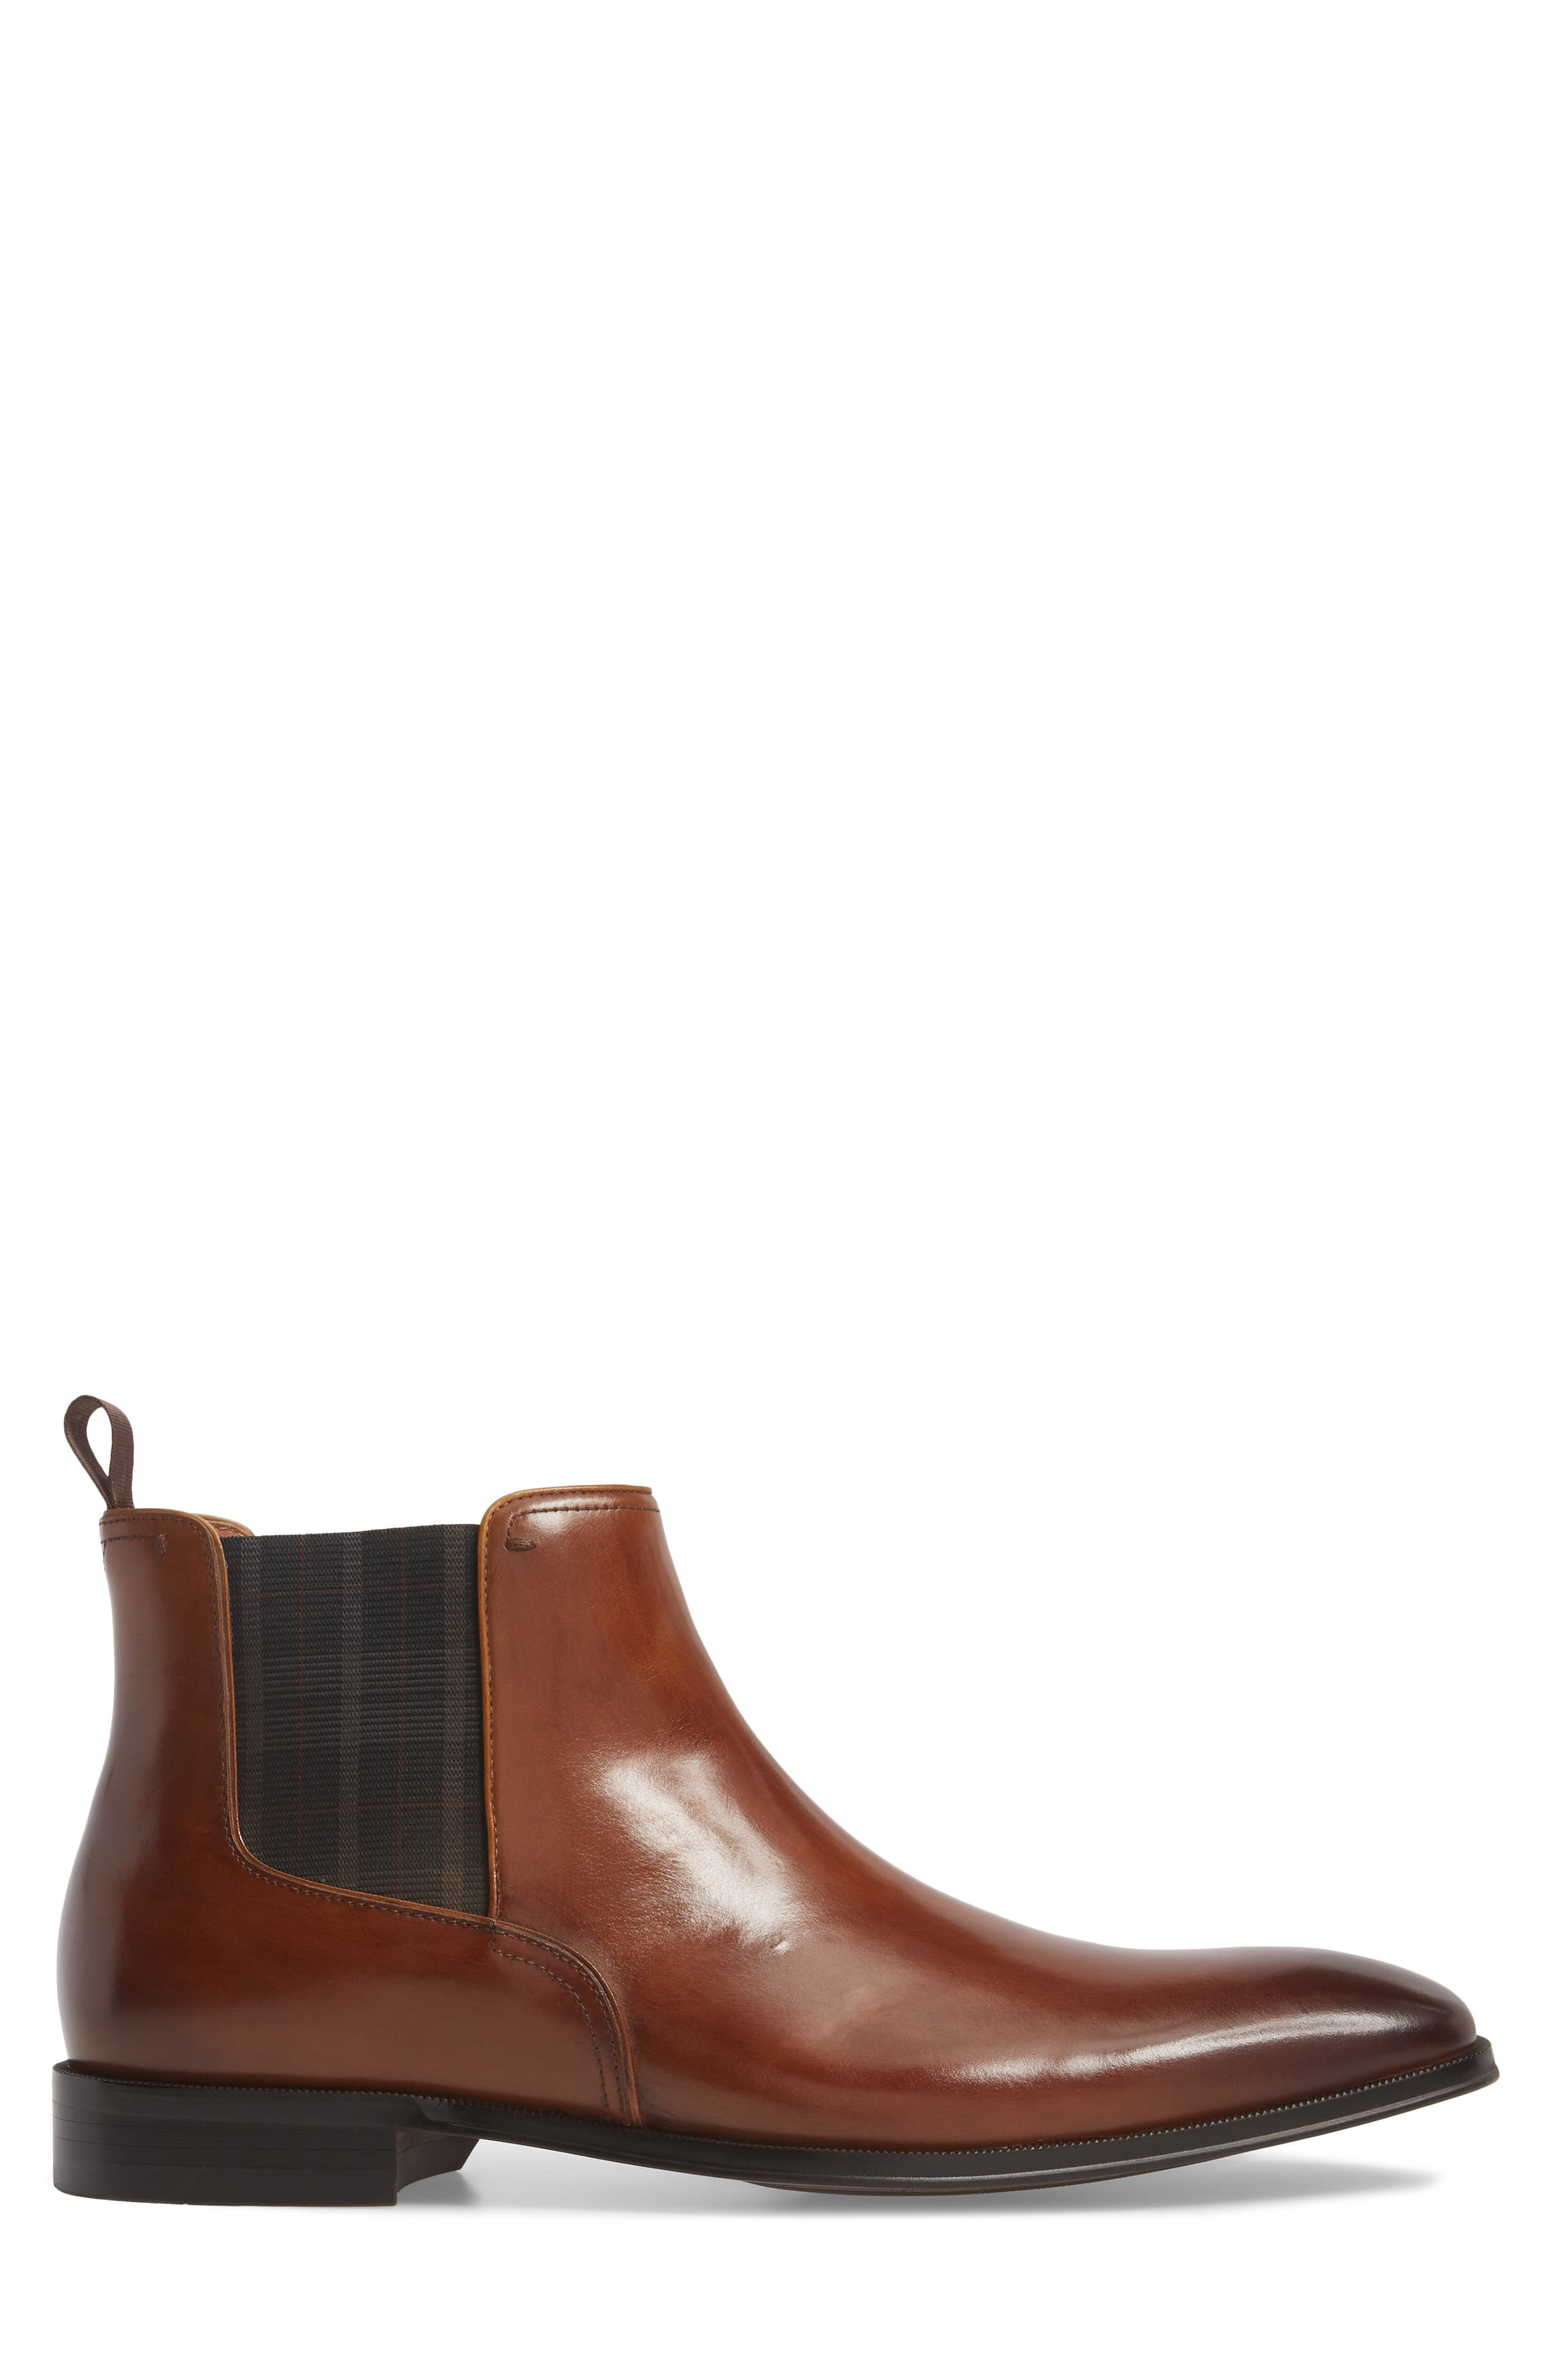 Belfast Chelsea Boot,                             Alternate thumbnail 3, color,                             COGNAC LEATHER